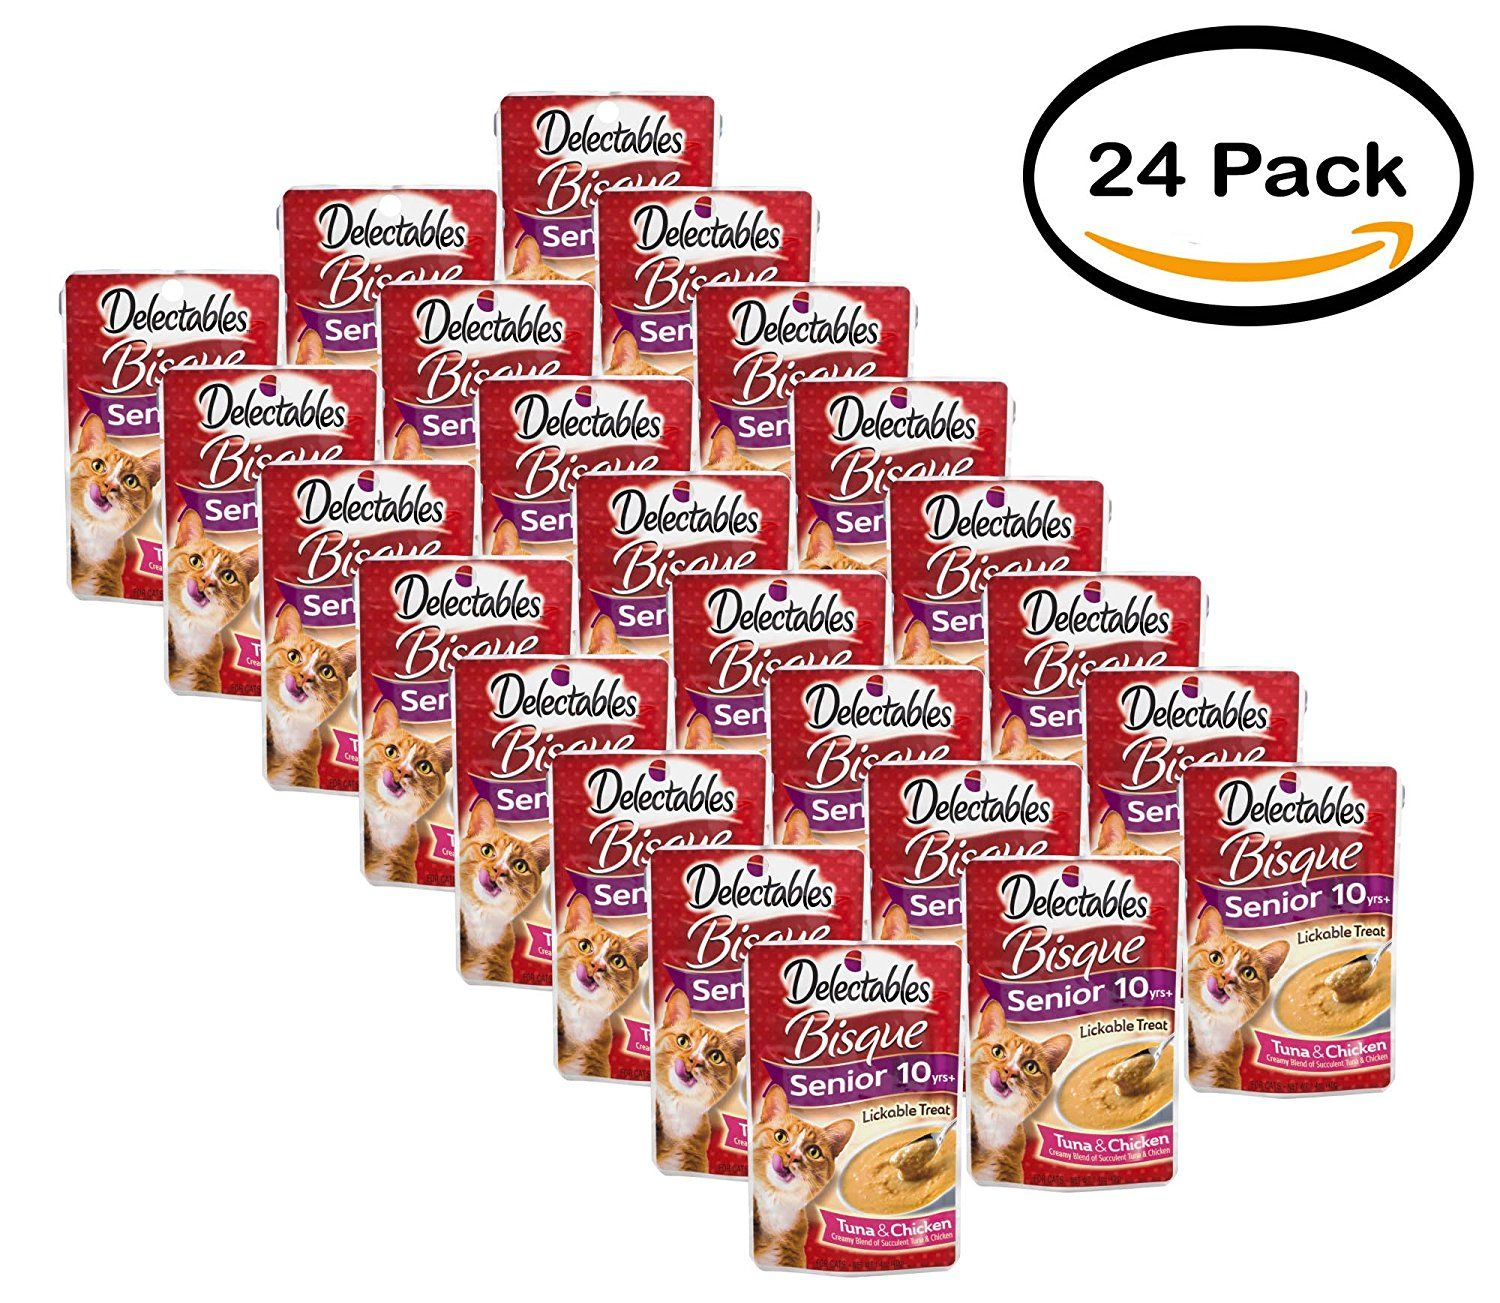 Pack of 24 delectables lickable treat bisque senior 10